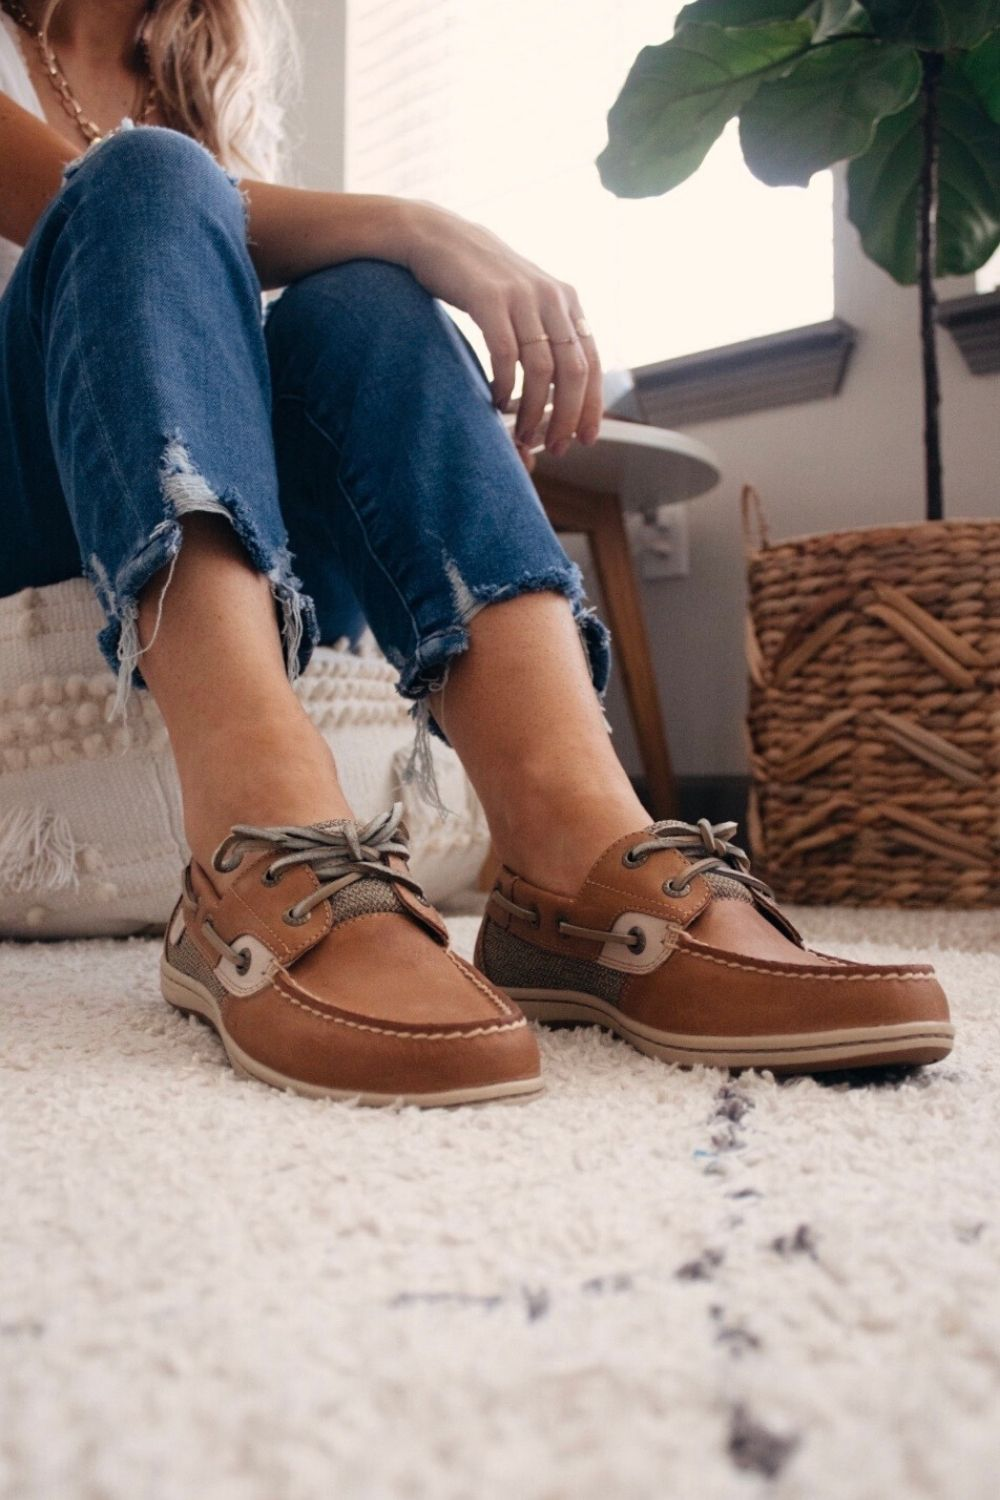 Pin on Sperry Women's Boat Shoes